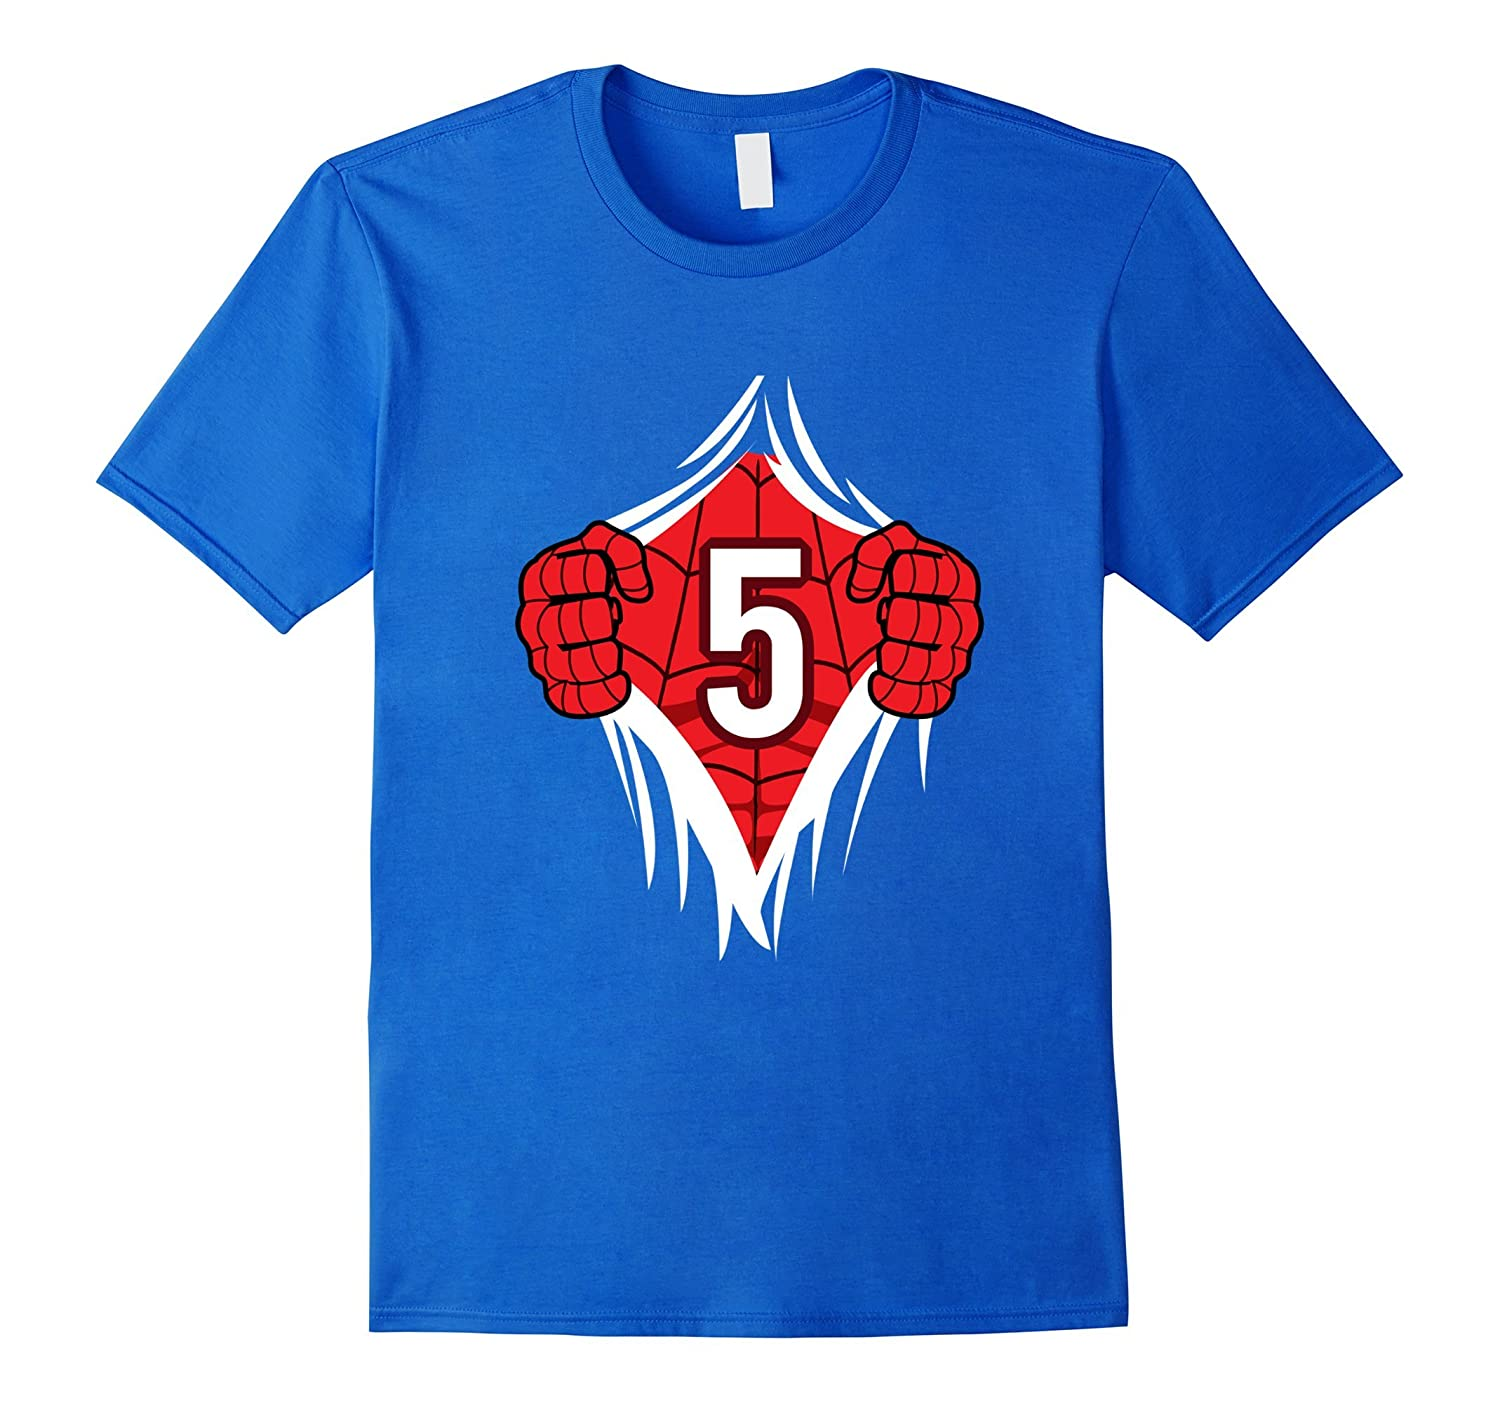 Superhero Birthday Shirt 5 Year Old Tshirt Girls Boys Comic ANZ